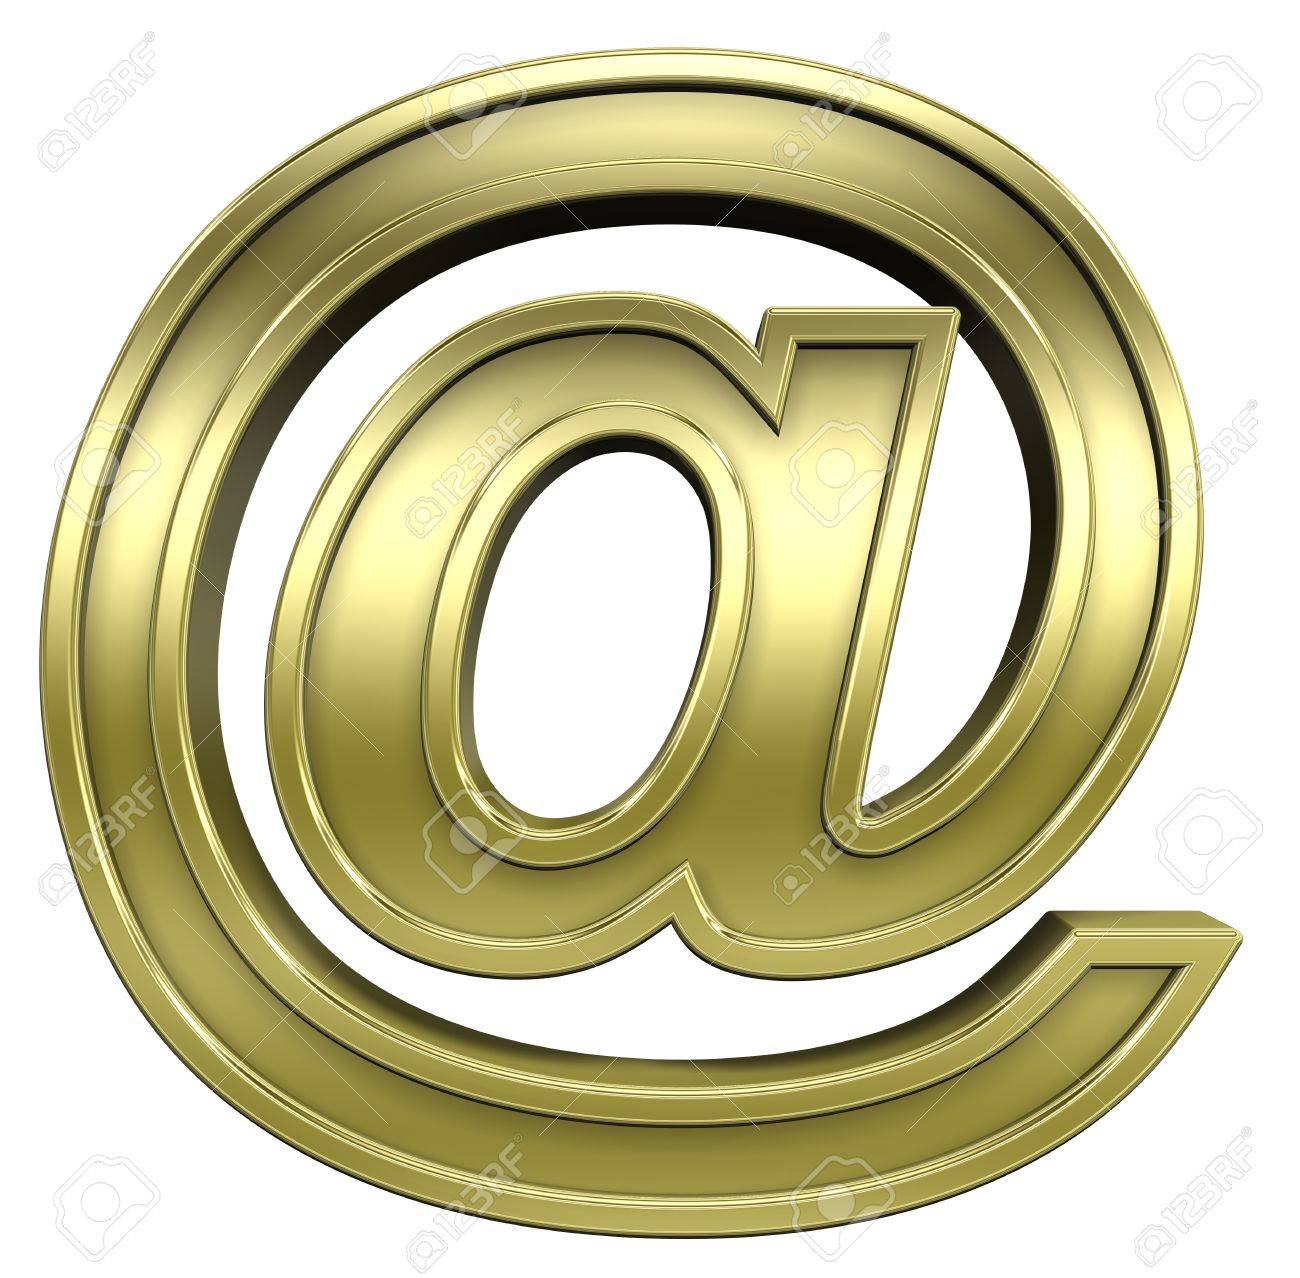 Mail sign from shiny gold with gold frame alphabet set, isolated on white. Computer generated 3D photo rendering. Stock Photo - 5644845